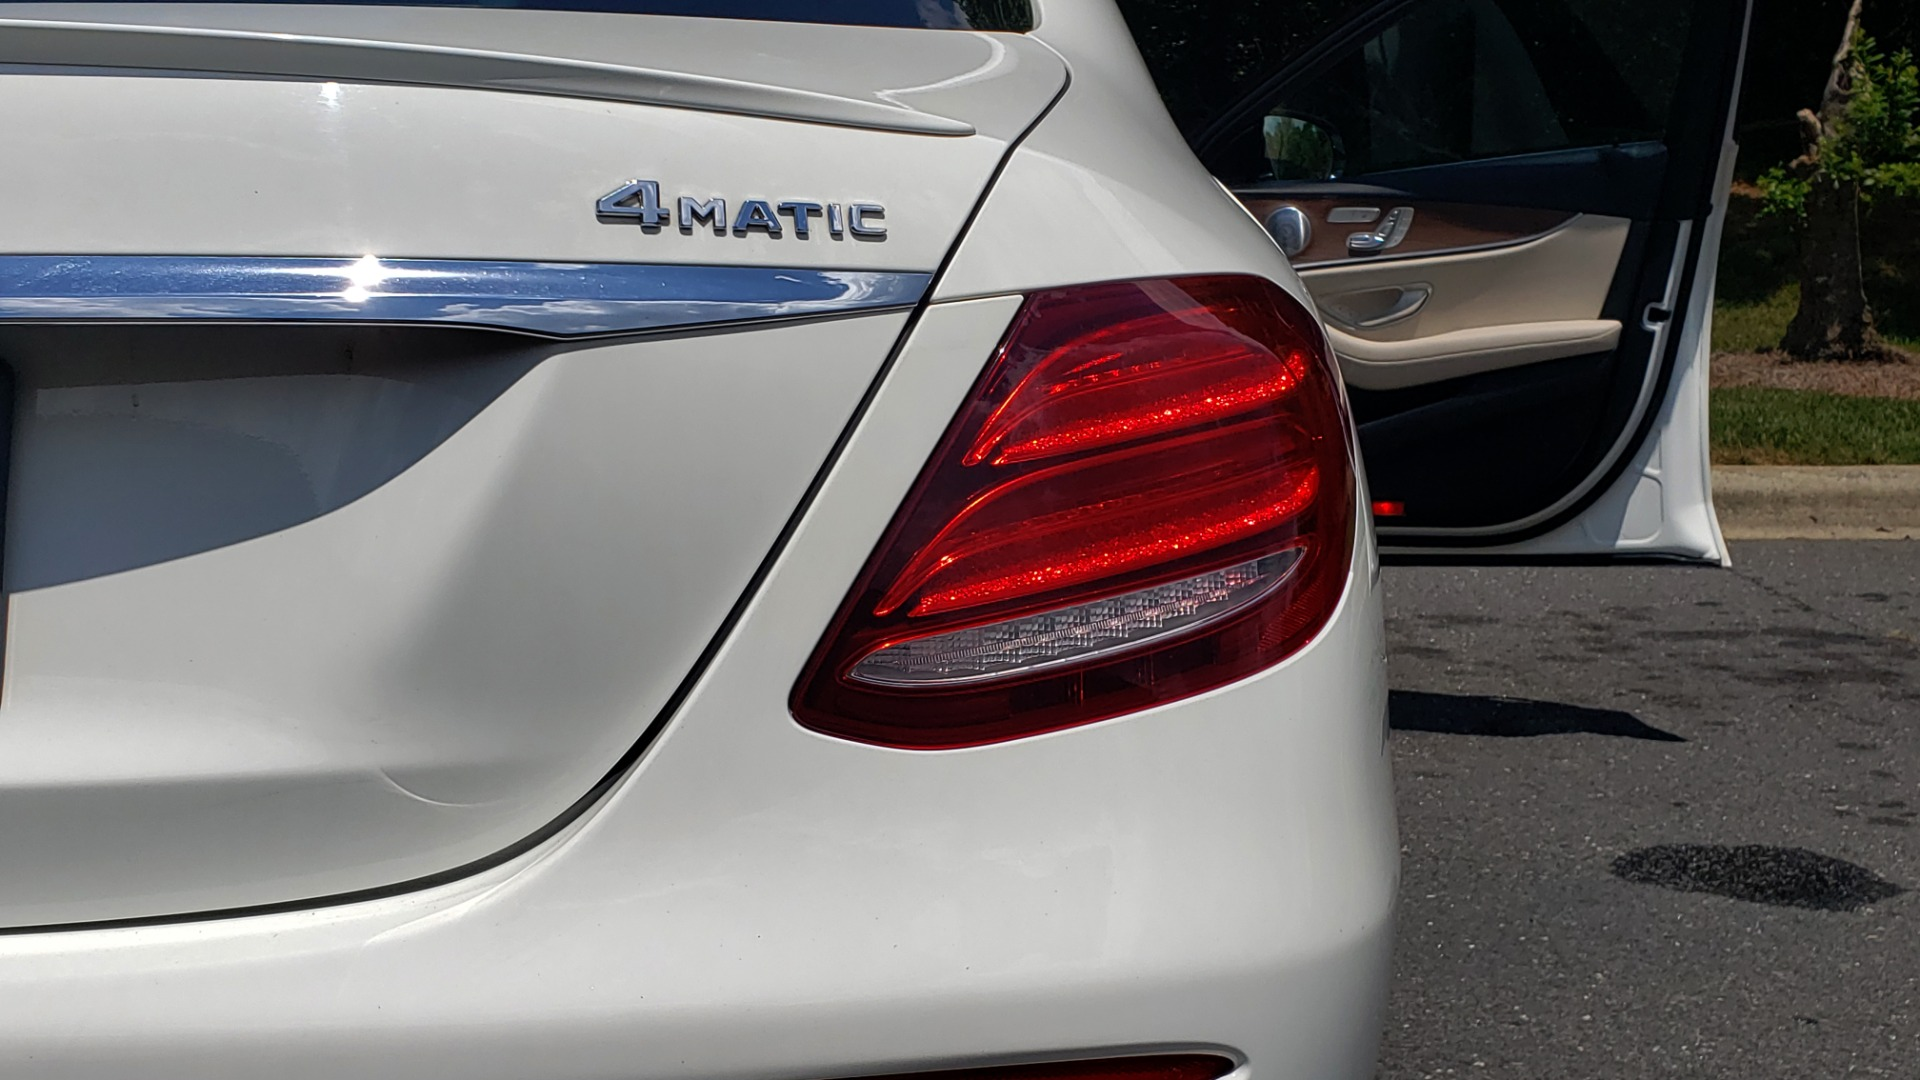 Used 2017 Mercedes-Benz E-CLASS E 300 PREMIUM / SPORT / NAV / SUNROOF / HTD STS / BSM / REARVIEW for sale $27,995 at Formula Imports in Charlotte NC 28227 26